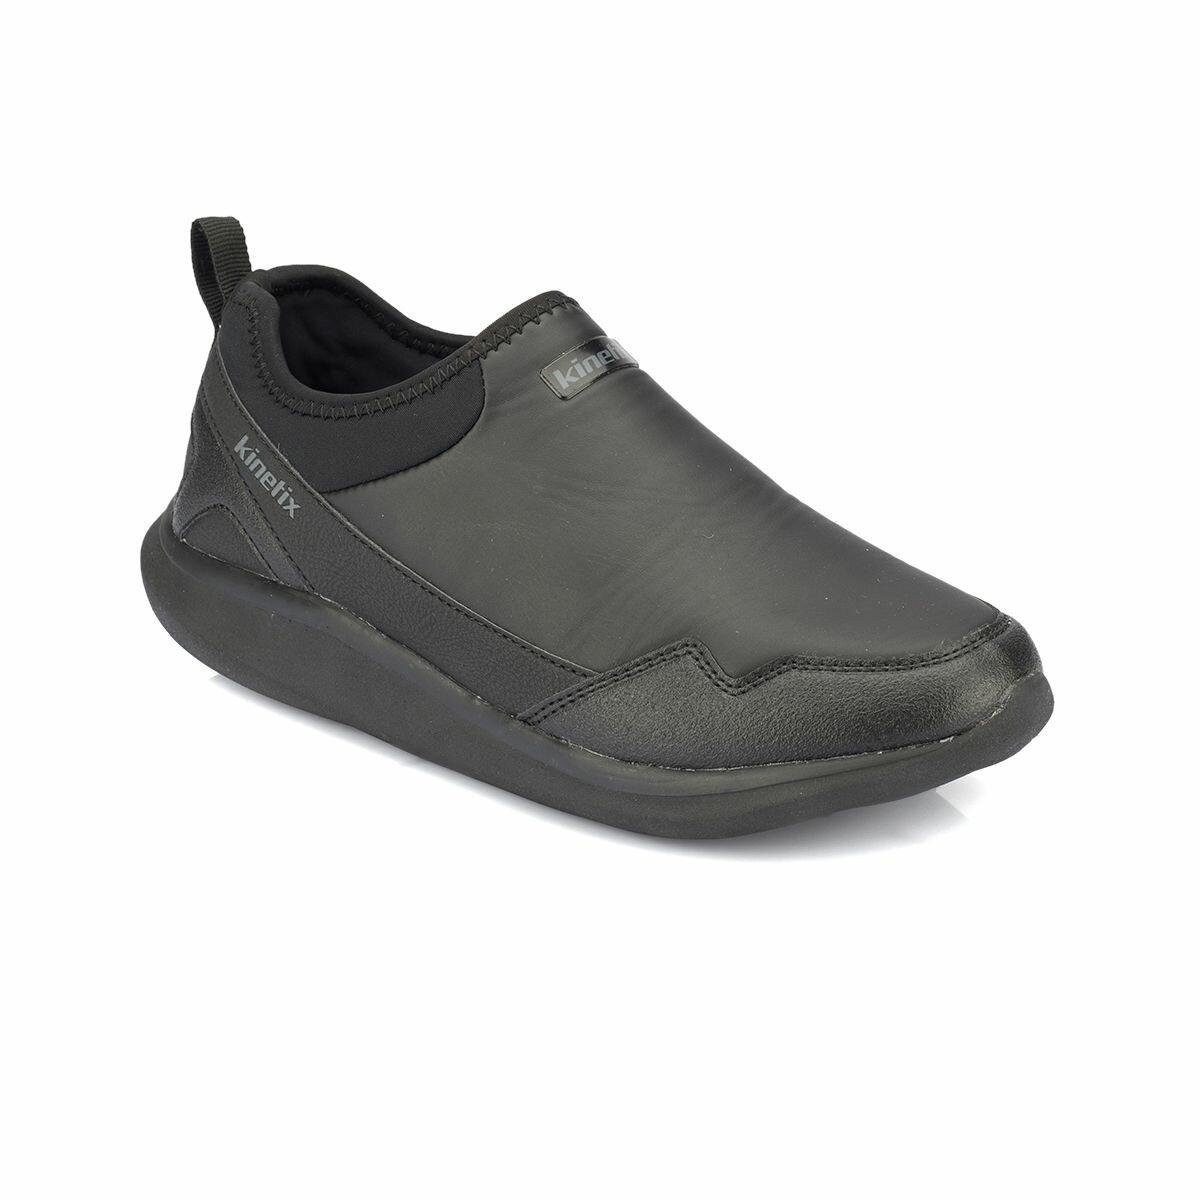 FLO JOY PU W Black Women Walking Shoes KINETIX